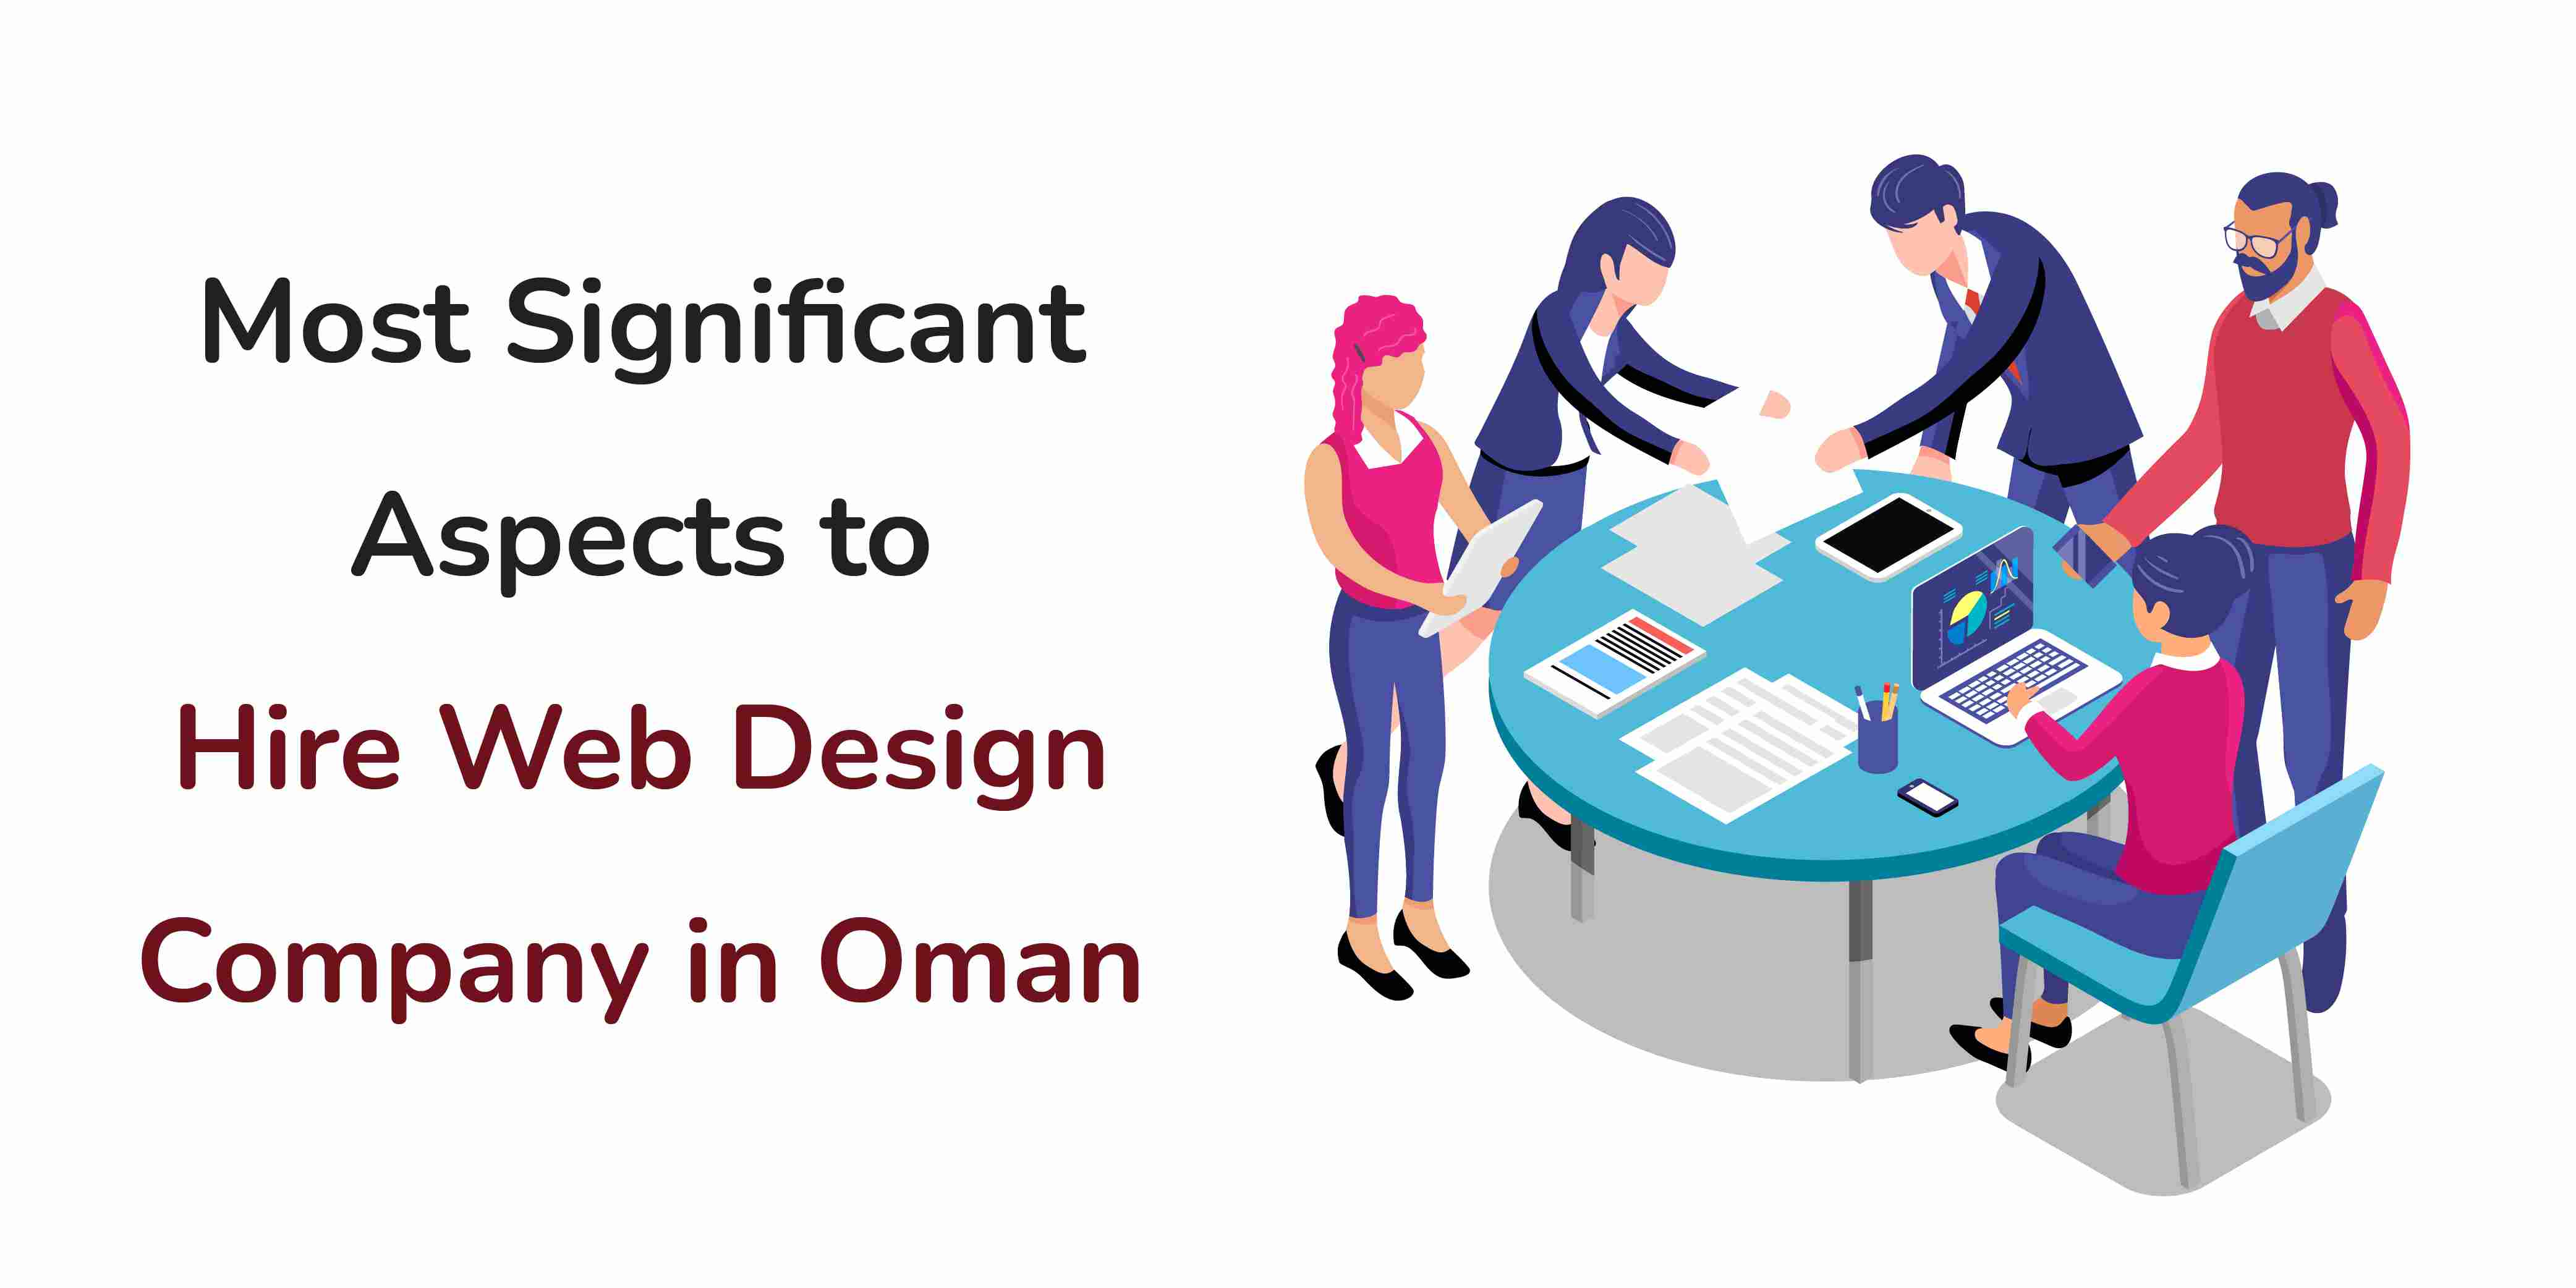 Most Significant Aspects to Hire Web Design Company in Oman